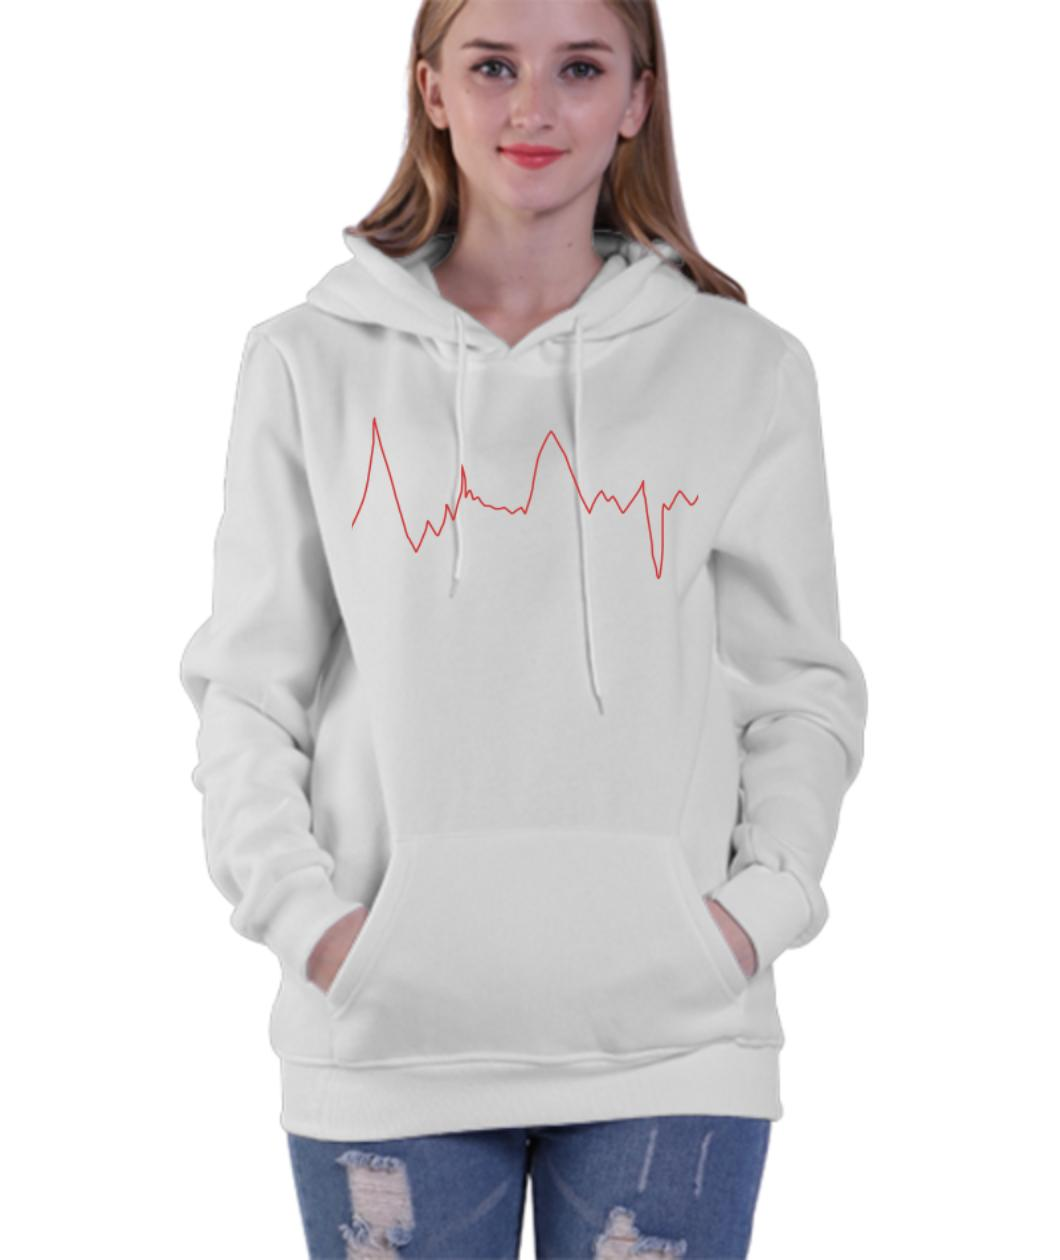 Pull � capuche imprim茅 dessus �lectrocardiogramme